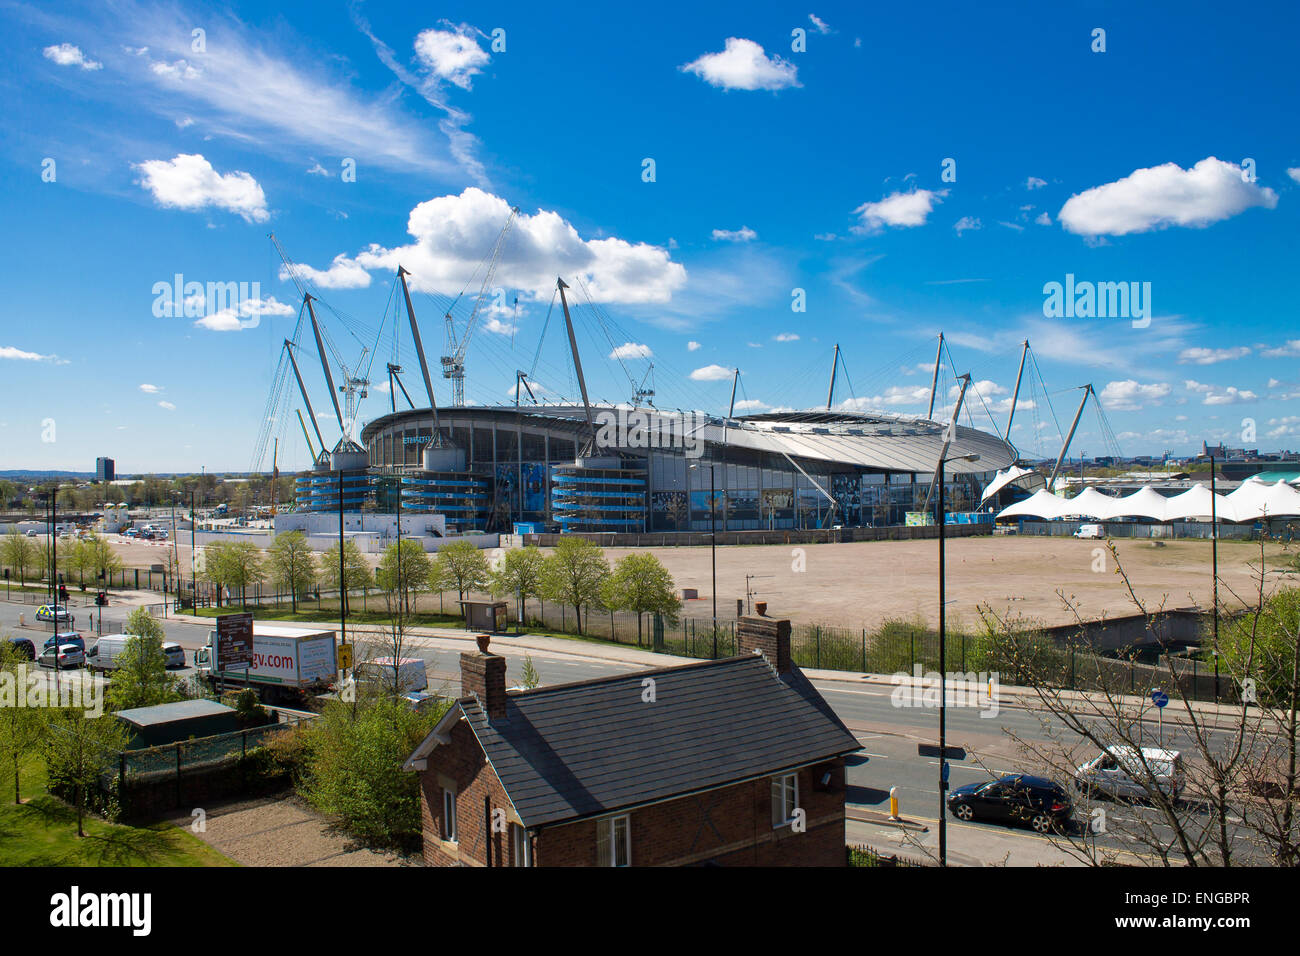 Etihad Stadium in Manchester, United Kingdom. - Stock Image